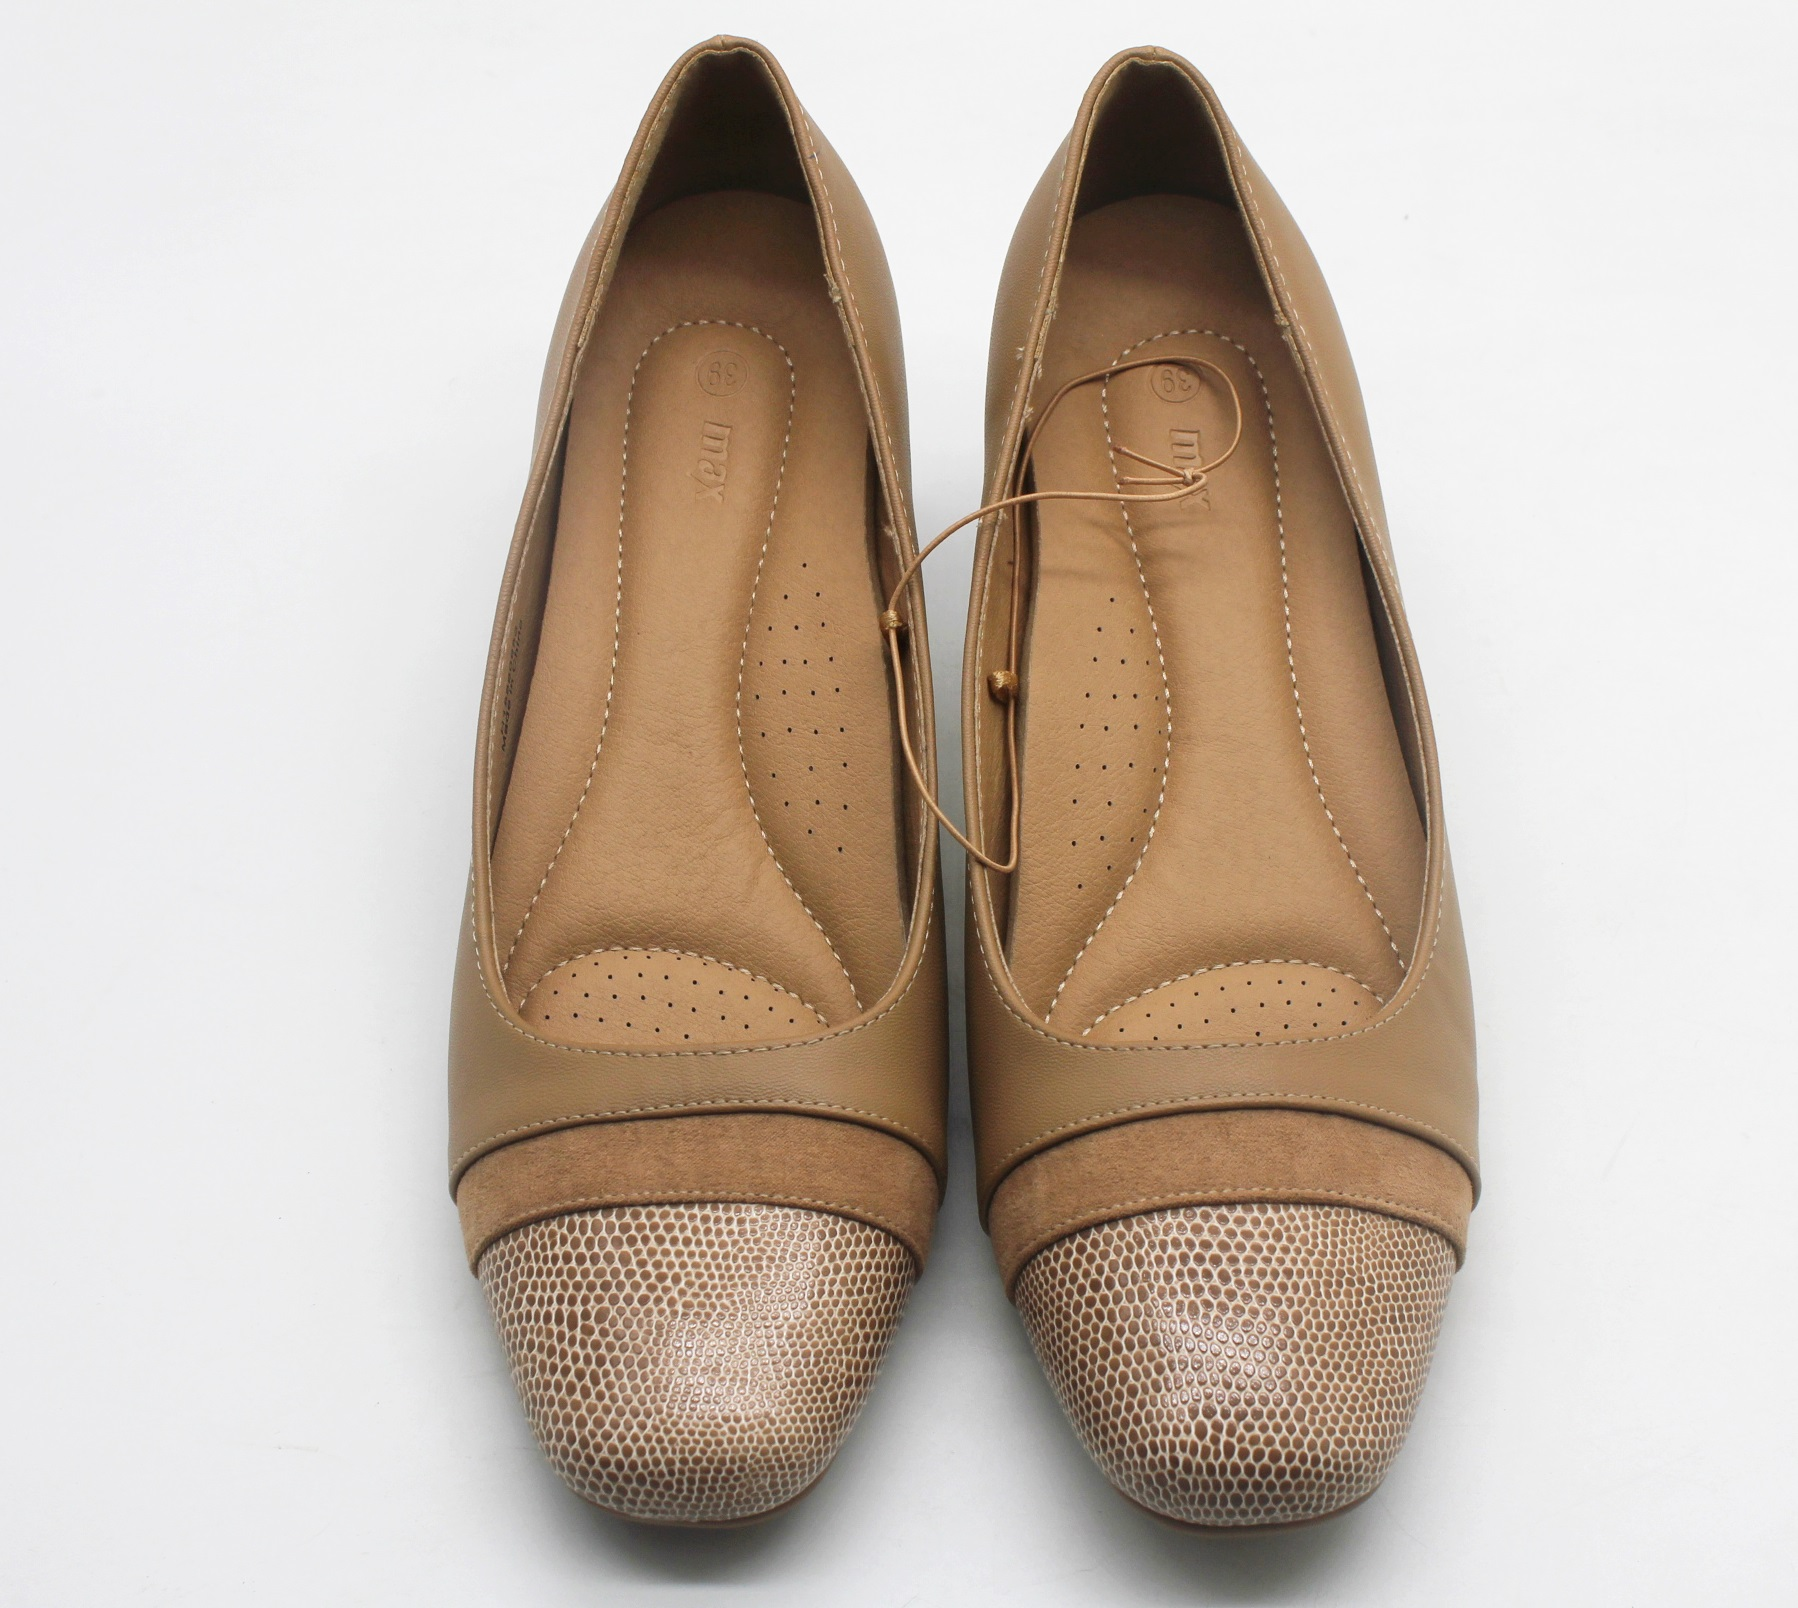 a57d2705df77 MAX SHOE WITH BLOCK HEEL Quick View